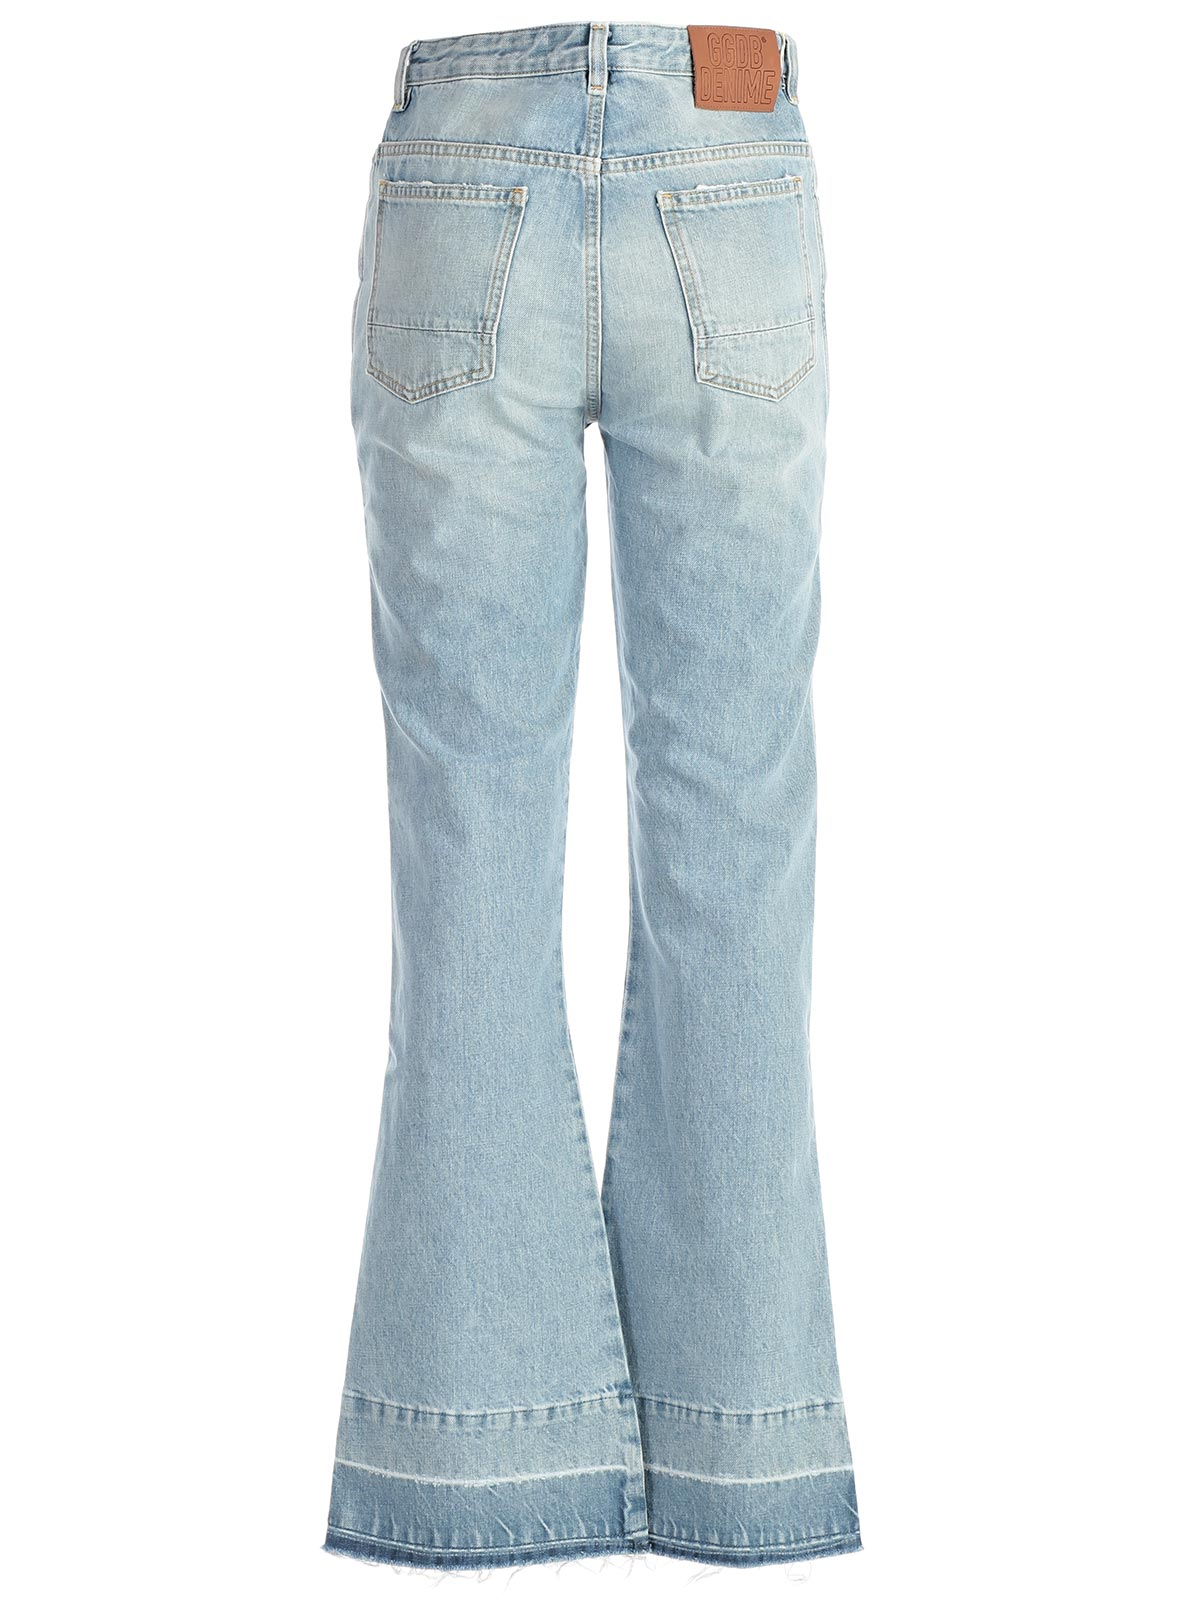 Picture of Golden Goose Deluxe Brand Jeans